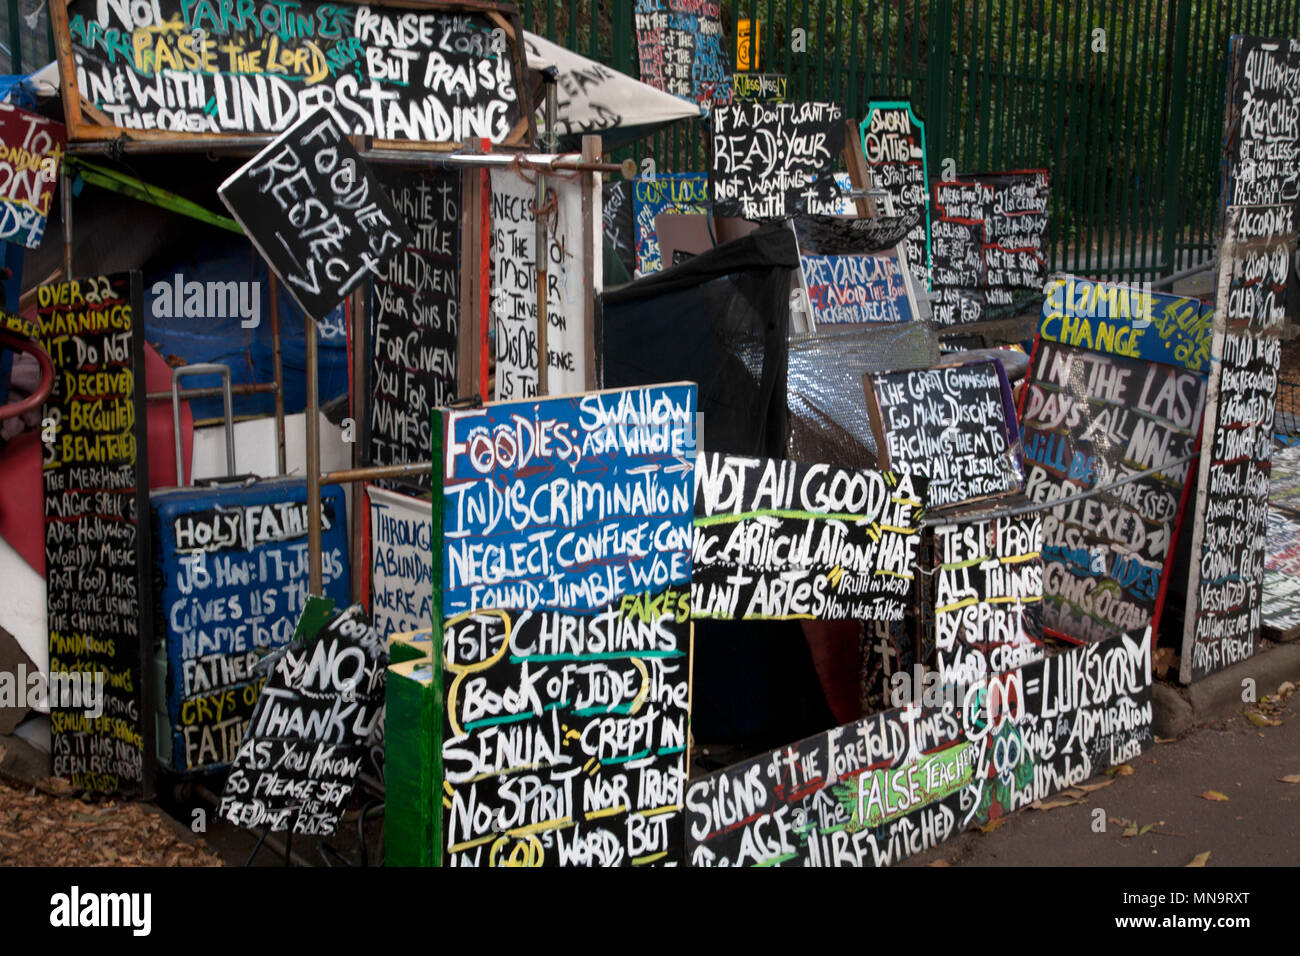 protesters writings and boards belmore park sydney new south wales australia - Stock Image